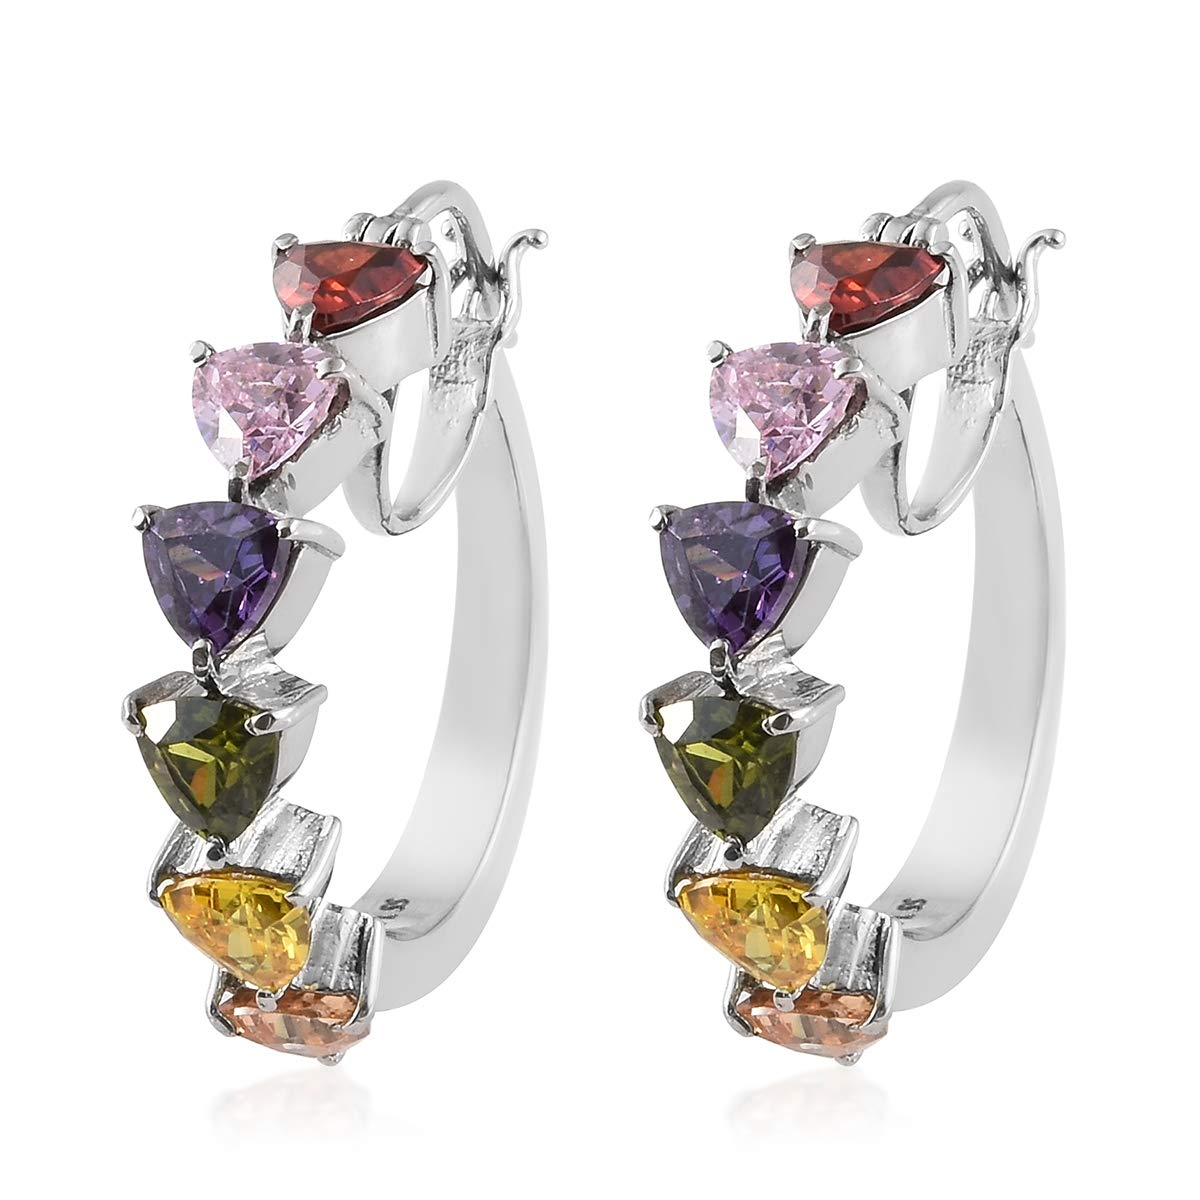 6 Stone Multicolor Heart Hoops, Hoop Earrings Cubic Zirconia CZ Hypoallergenic Gift Jewelry for women Cttw 7.9 by Shop LC Delivering Joy